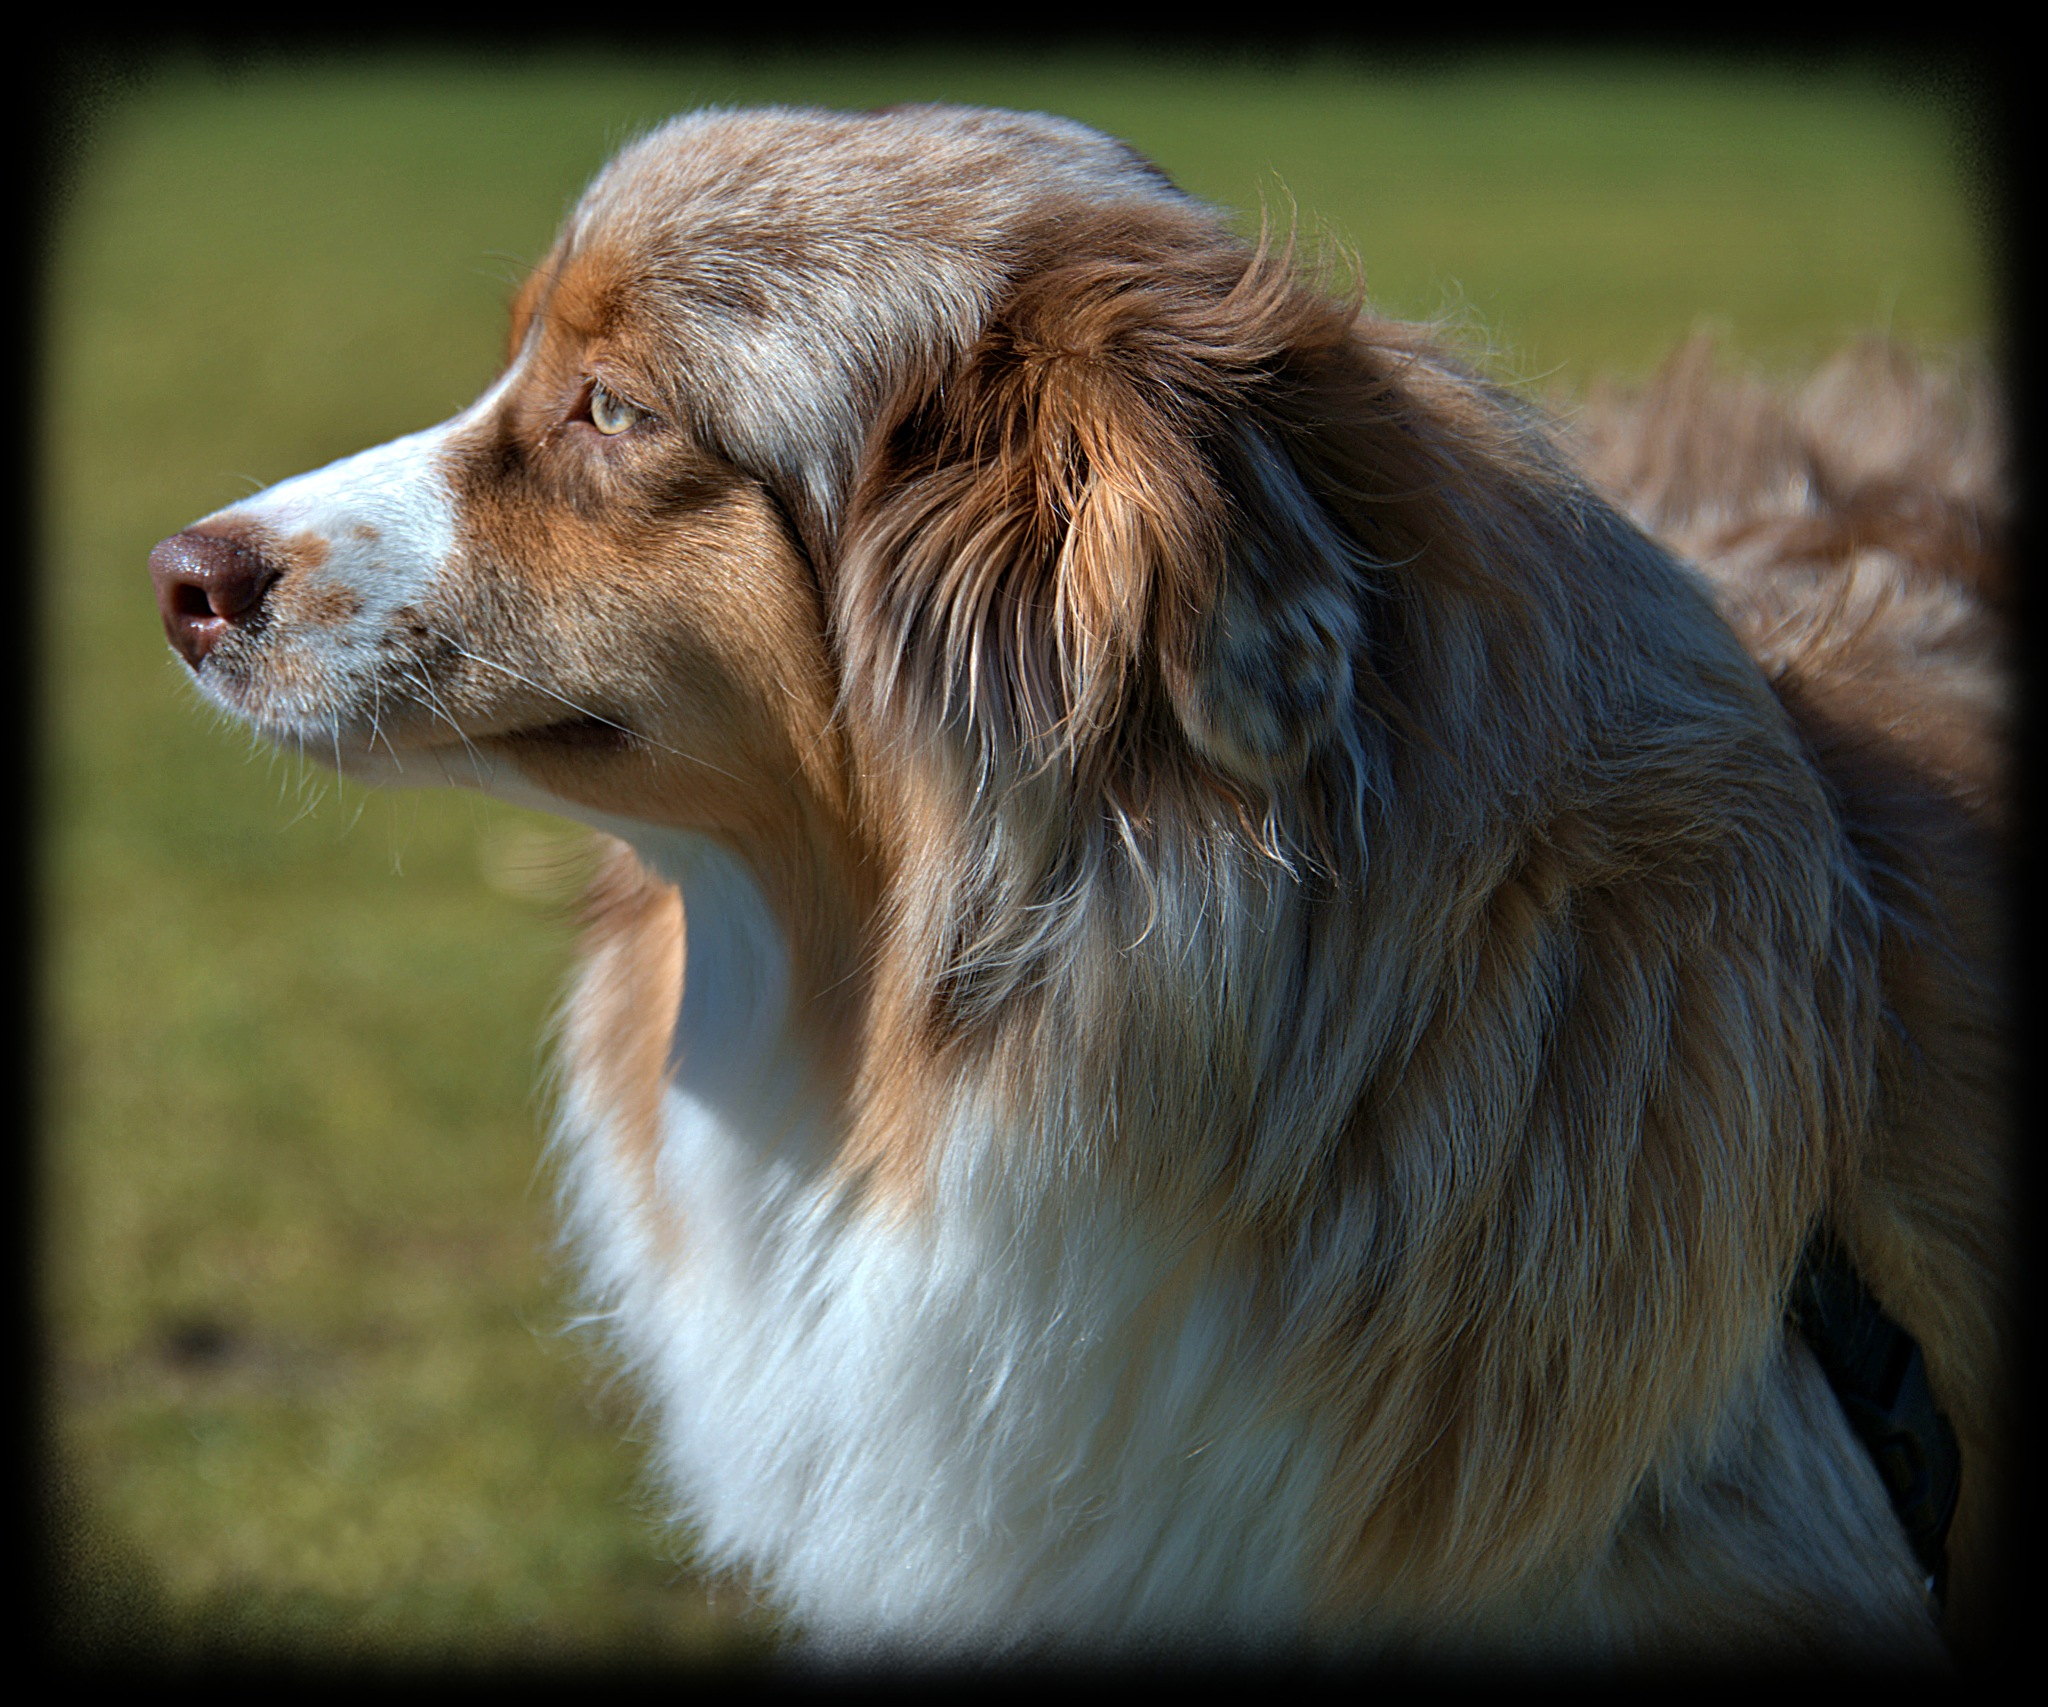 Dog Profile by pscottwong